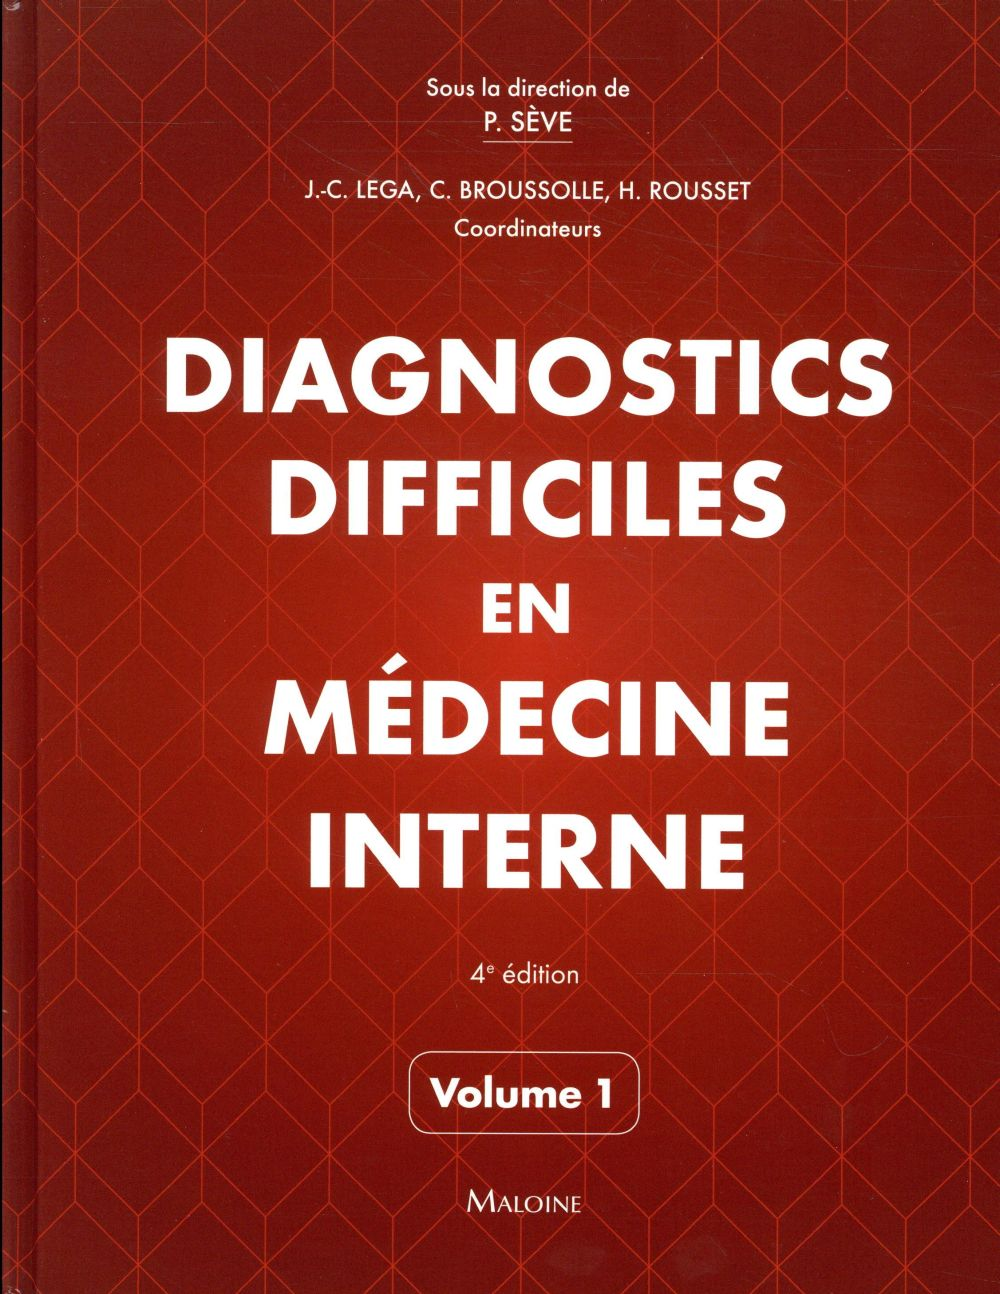 DIAGNOSTICS DIFFICILES EN MEDECINE INTERNE 4E ED.